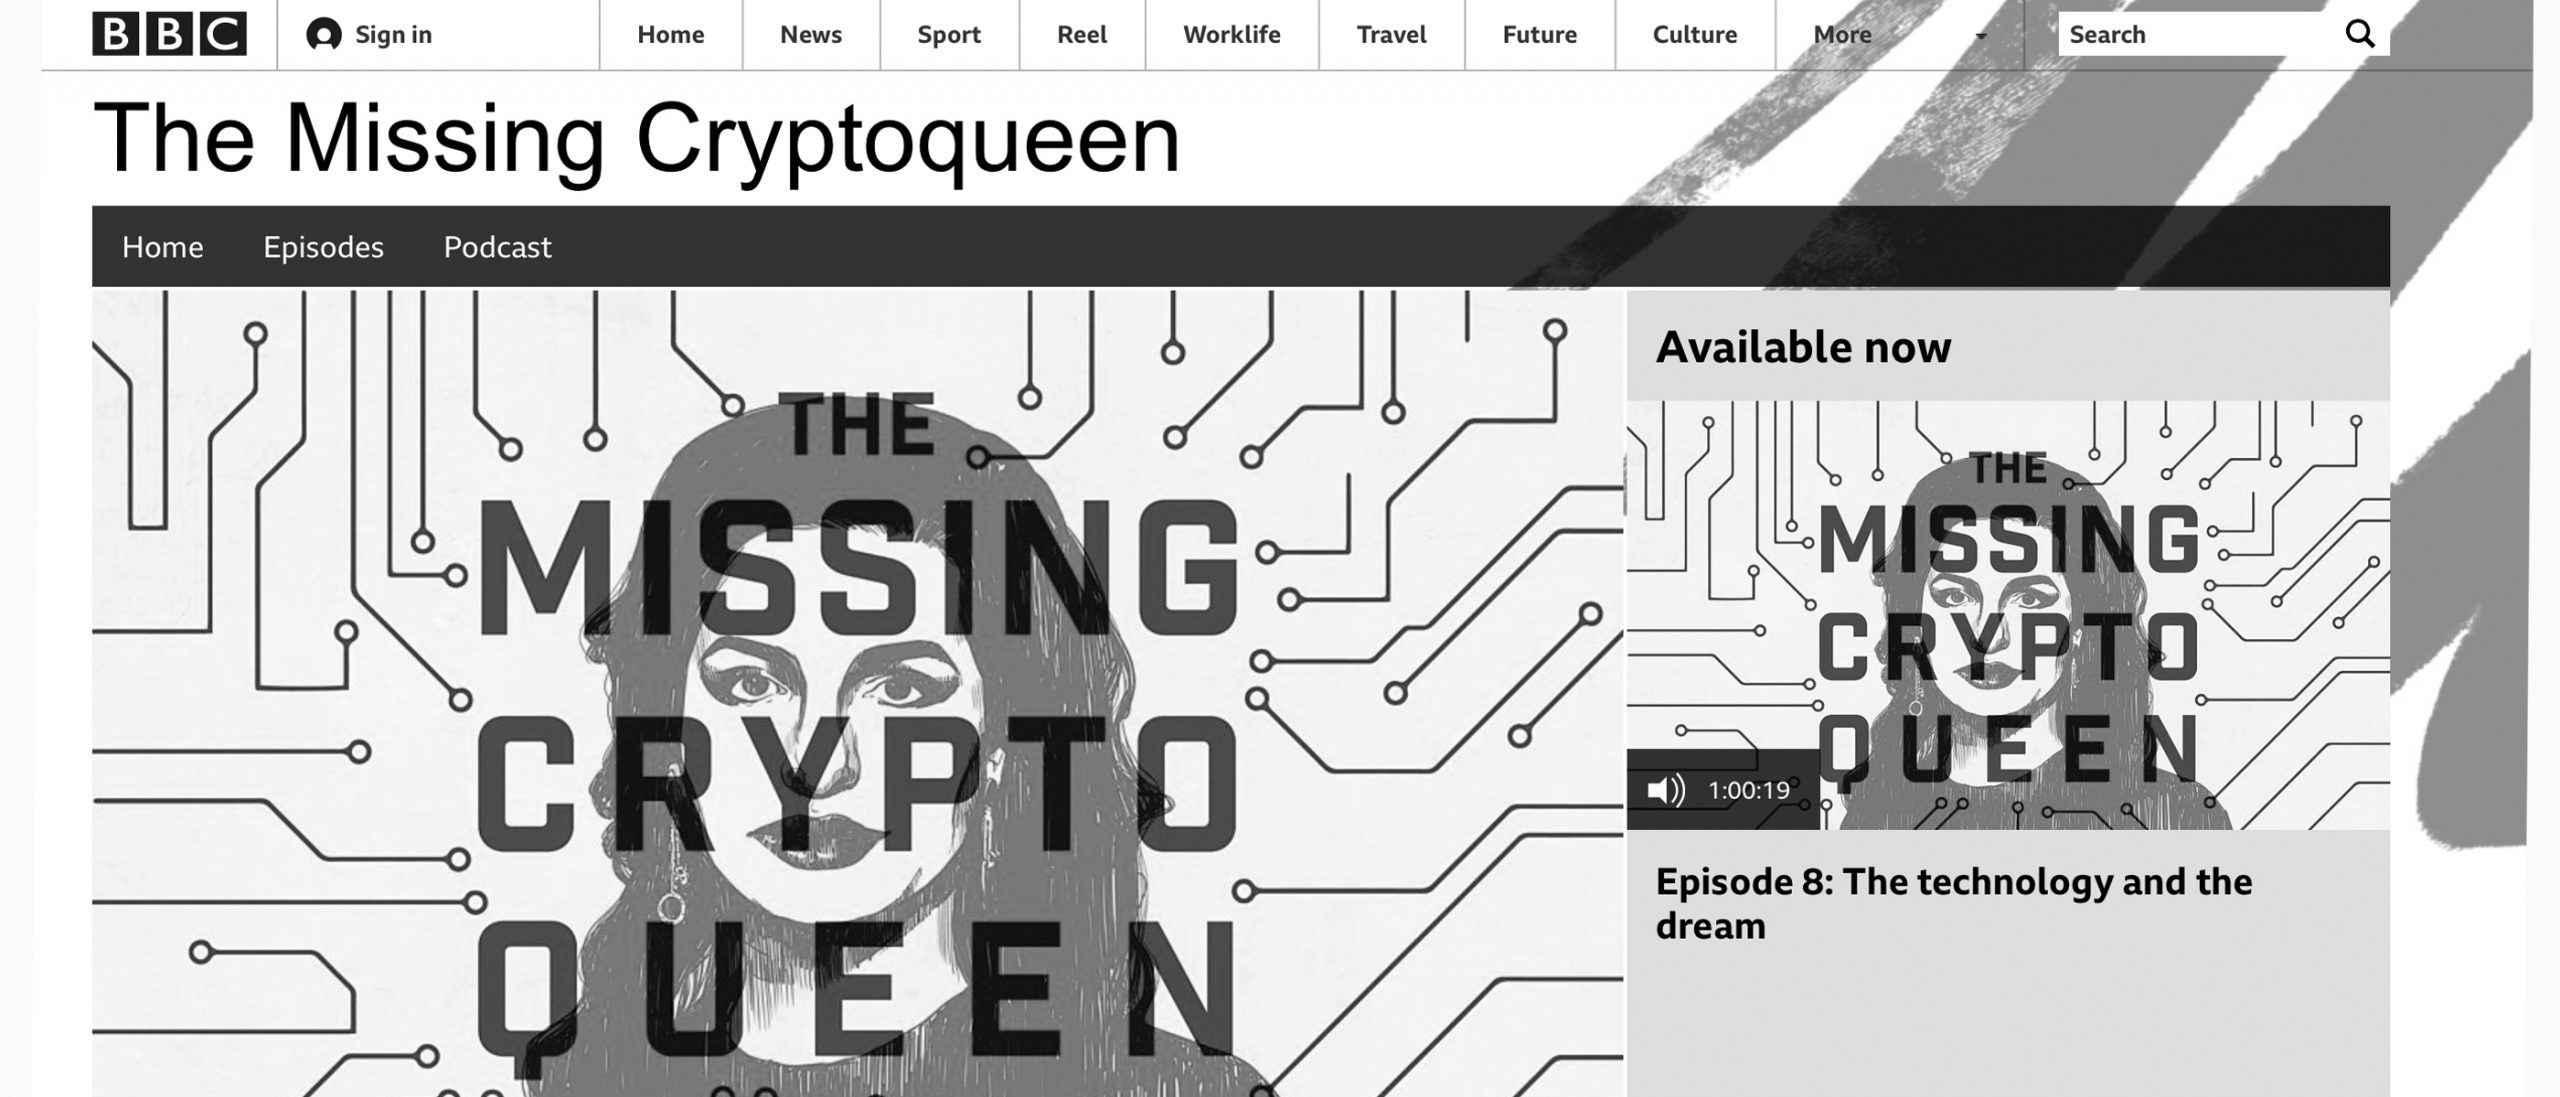 New Regency Television Wins Screen Rights to Onecoin Story - The Missing Cryptoqueen